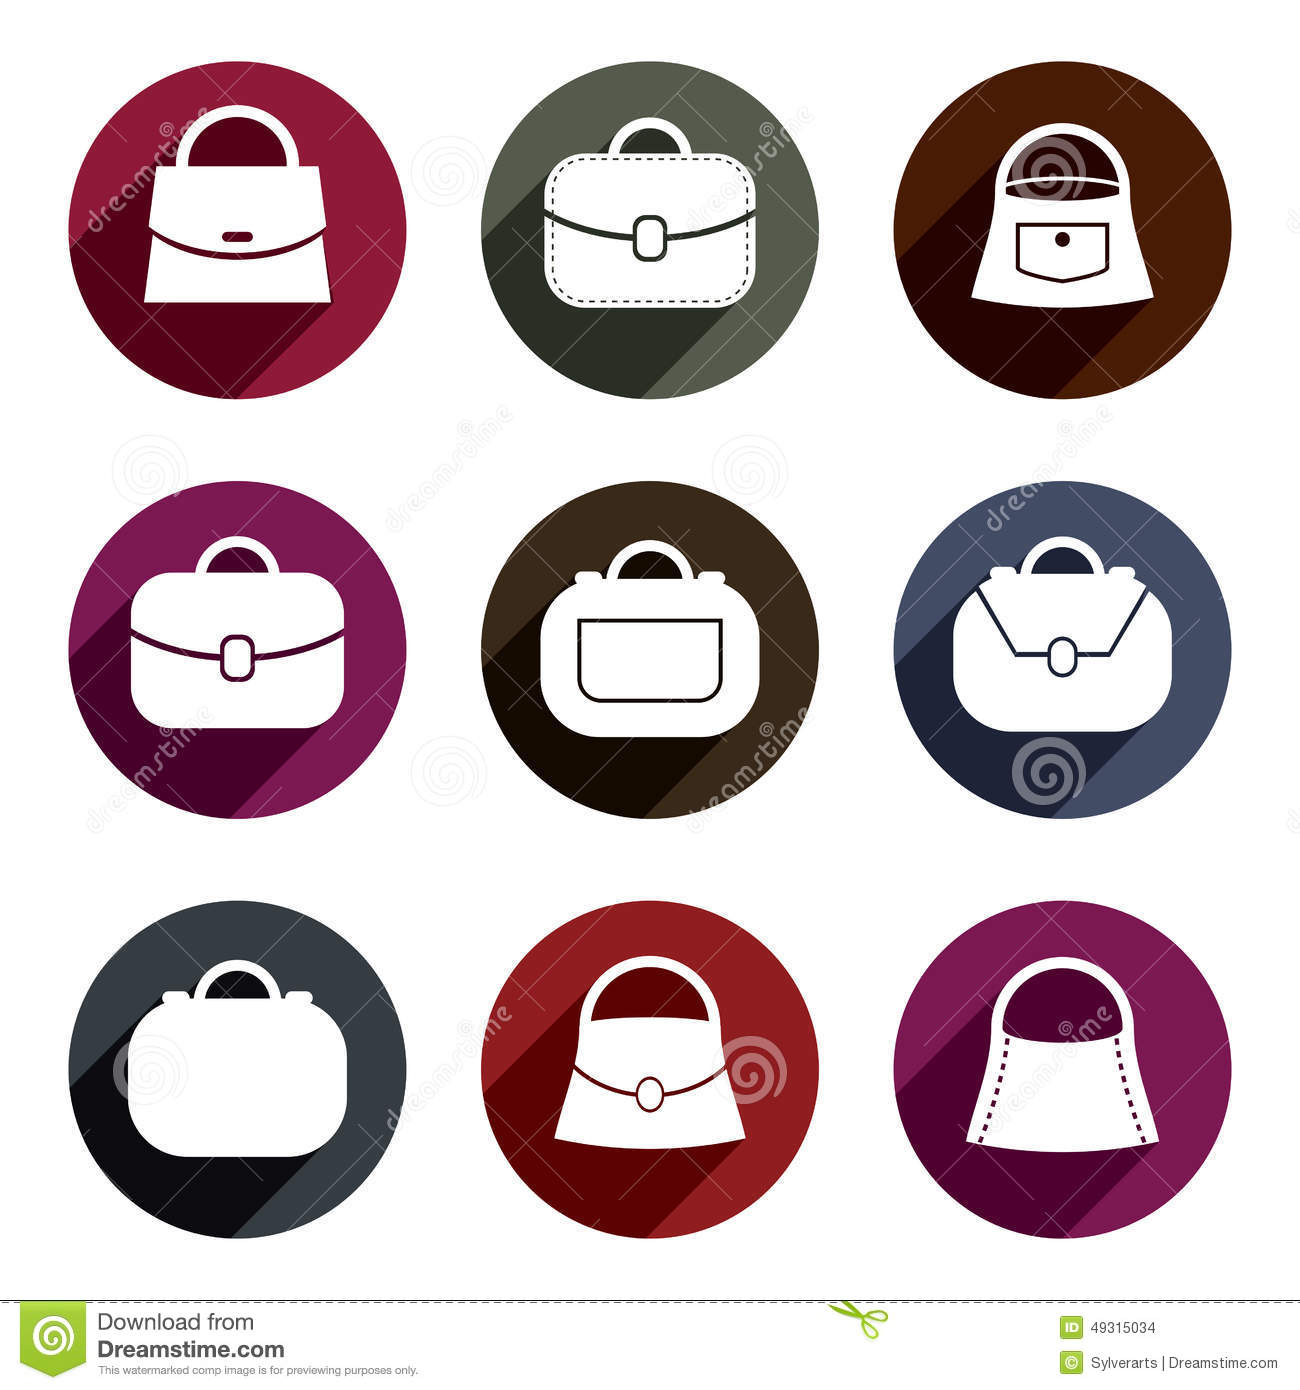 Bag vector icons set symbols collection stock vector bag vector icons set of 9 examples fashion theme symbols collec stock images biocorpaavc Gallery